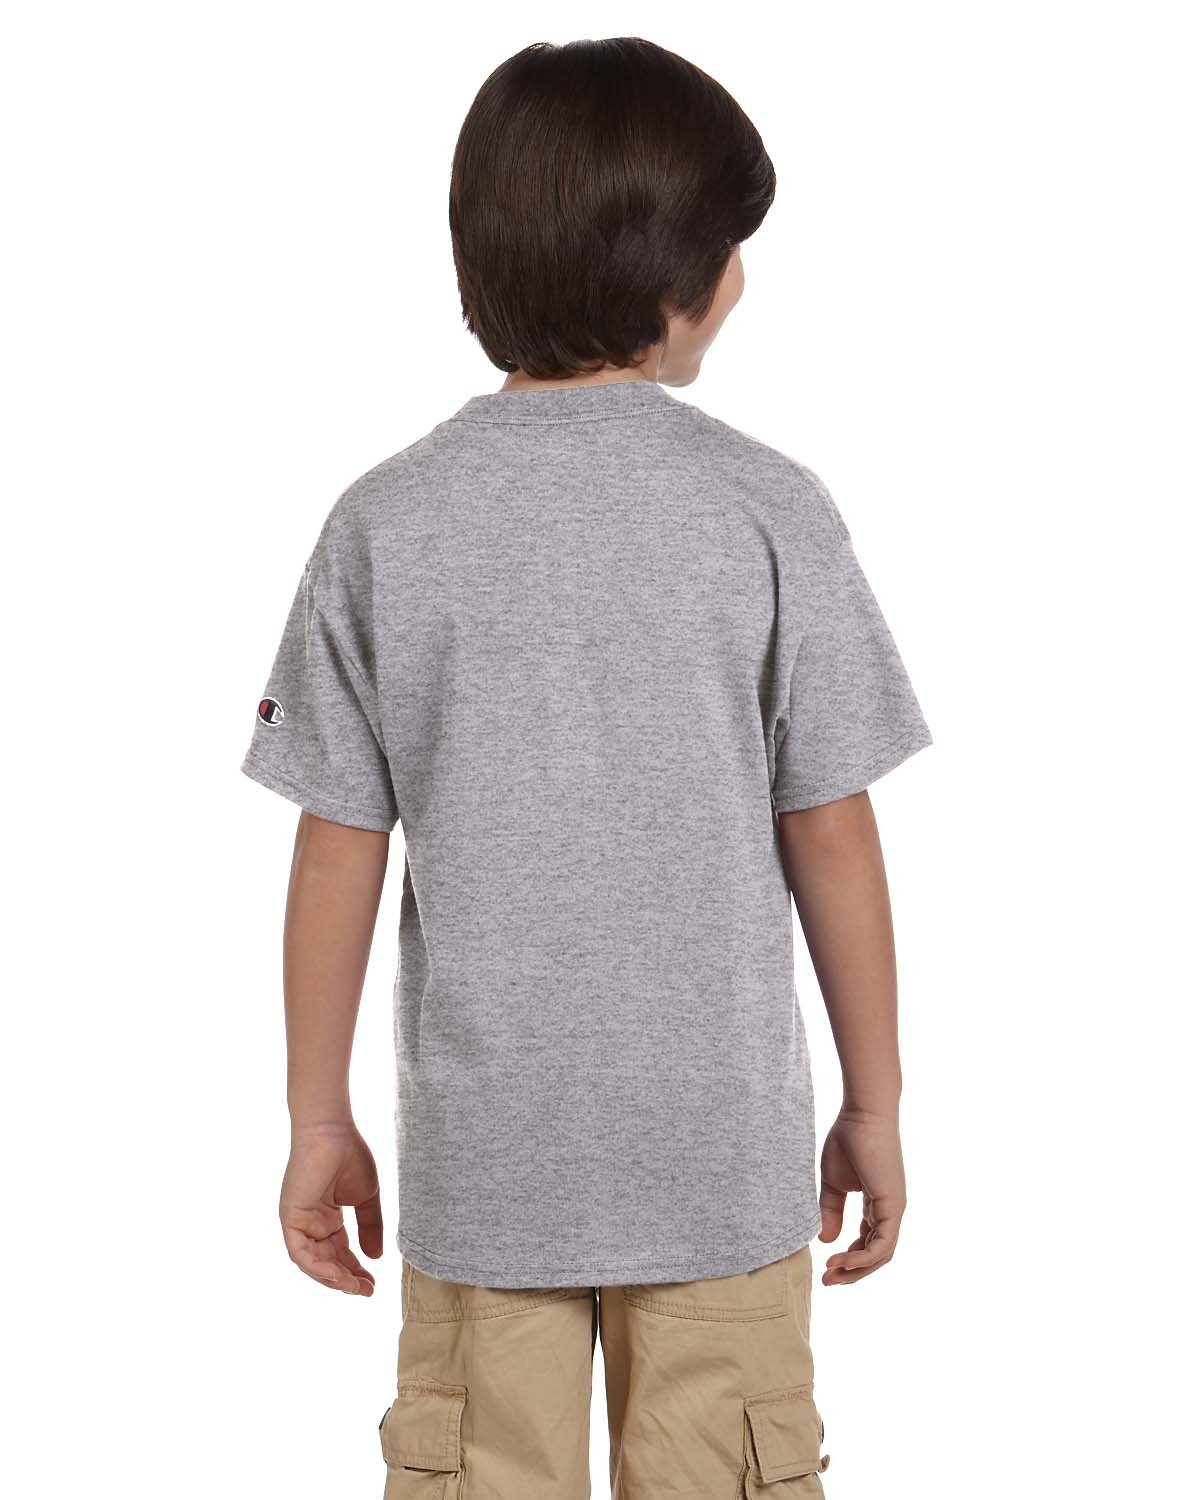 8654f02c Champion T435 Youth 6.1 oz. Short-Sleeve T-Shirt. Clearance T435_00 View  larger. Previous. T435_51 ...